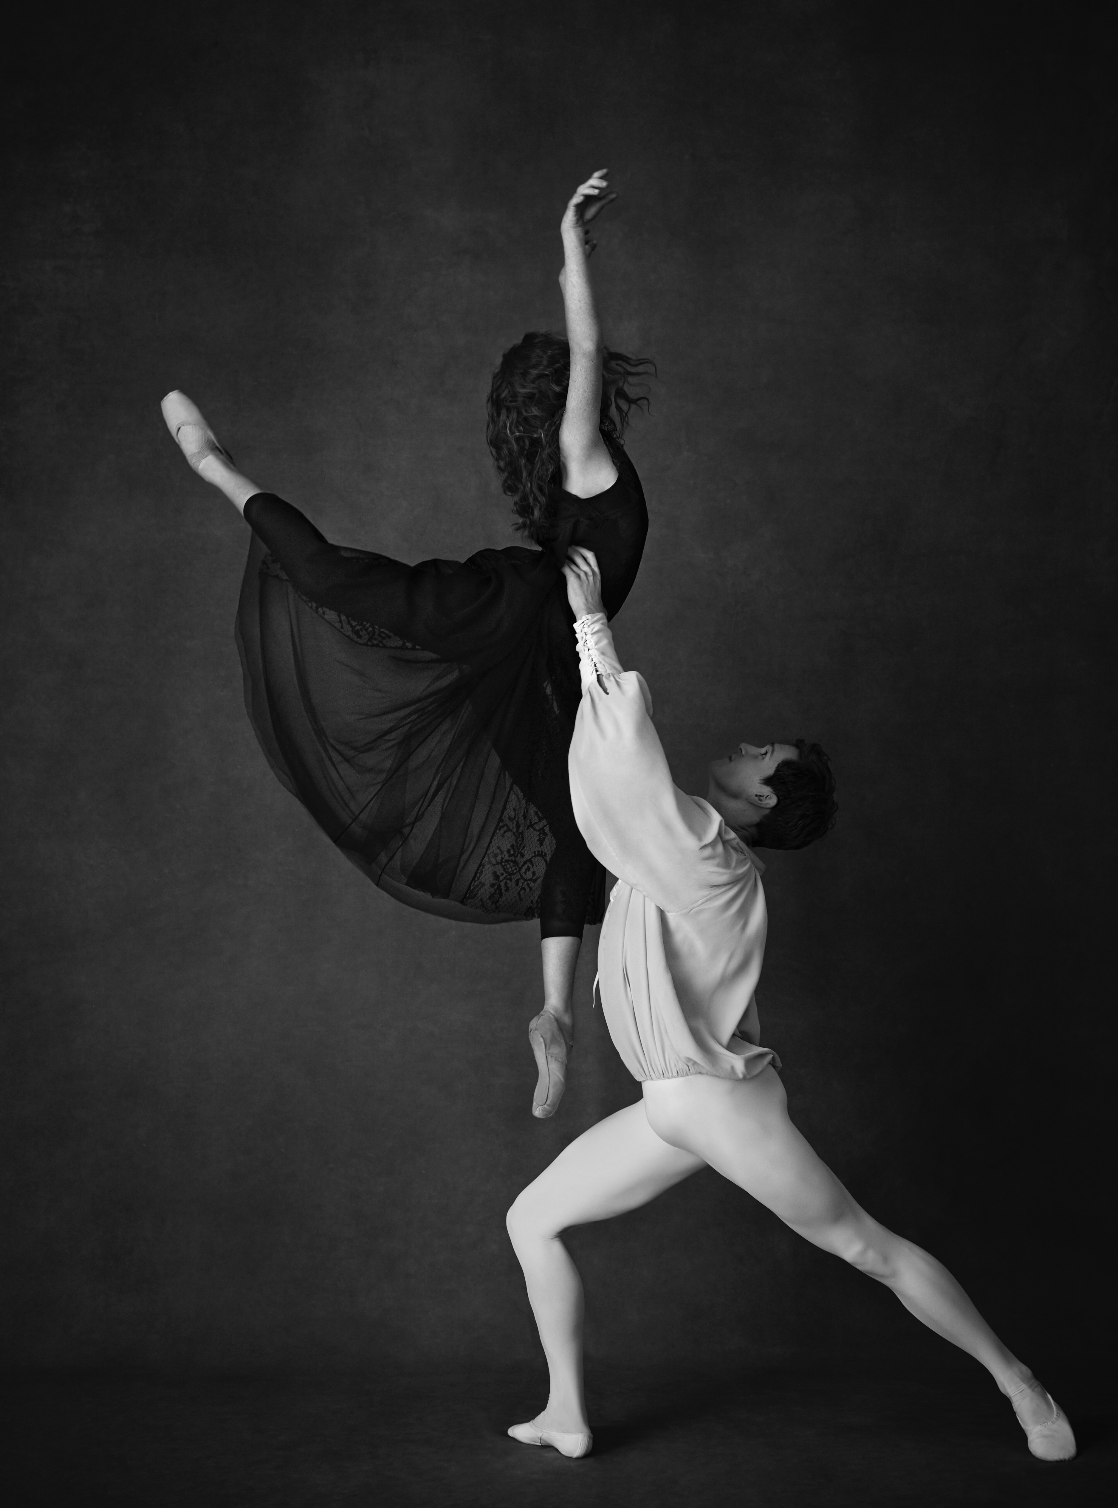 SHOT AT SUGAR STUDIOS - This stunning photograph of the Royal Ballet was taken by Agata Pospieszynska inside our rehearsal hall.©2019 Harper's Bazaar. Used with permission